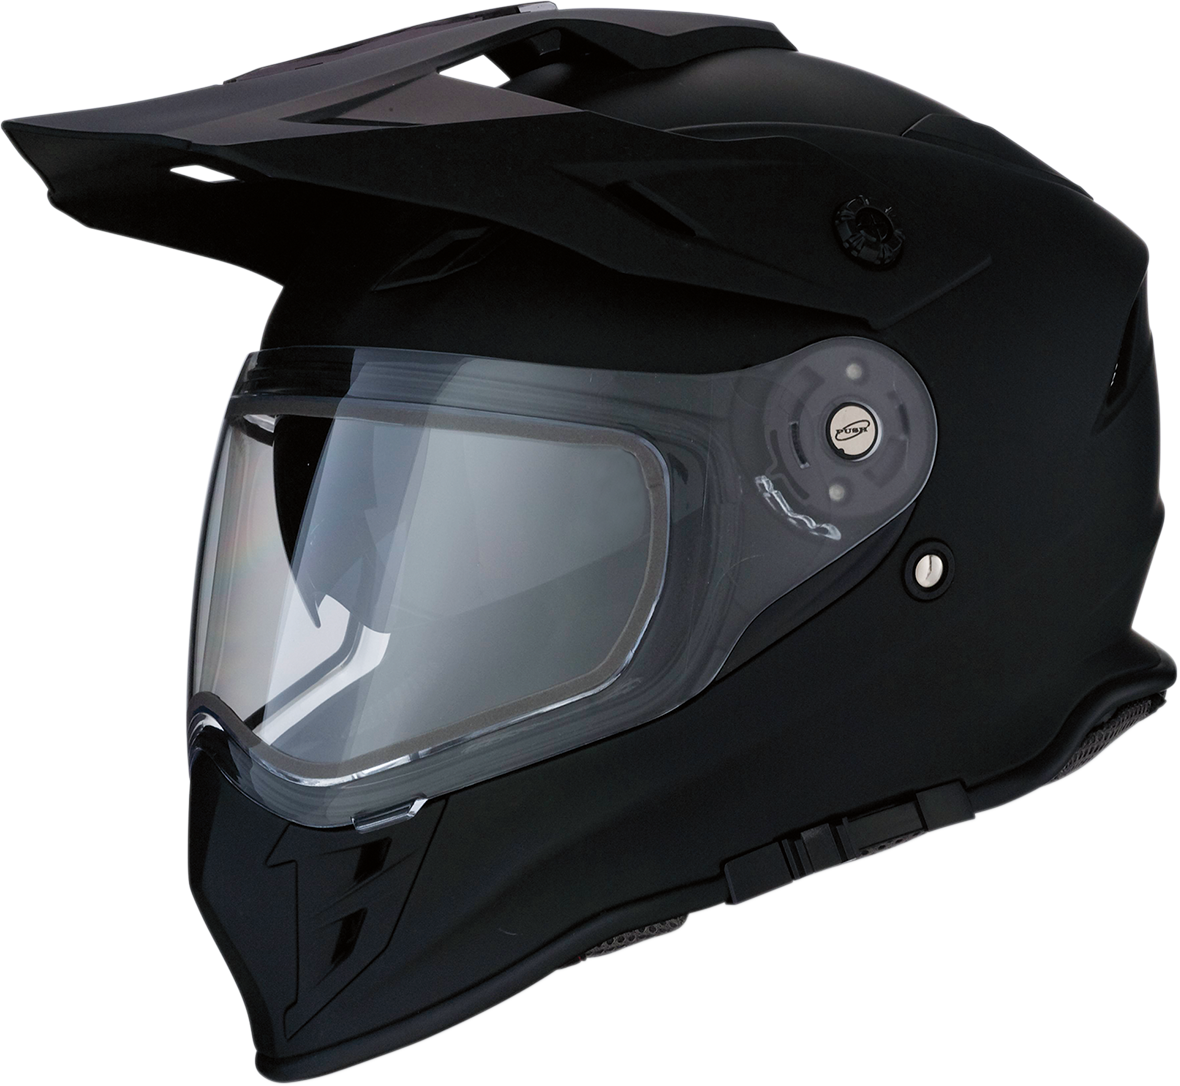 Z1R Black Range Winter Snowmobile Sled Unisex Full Face Helmet